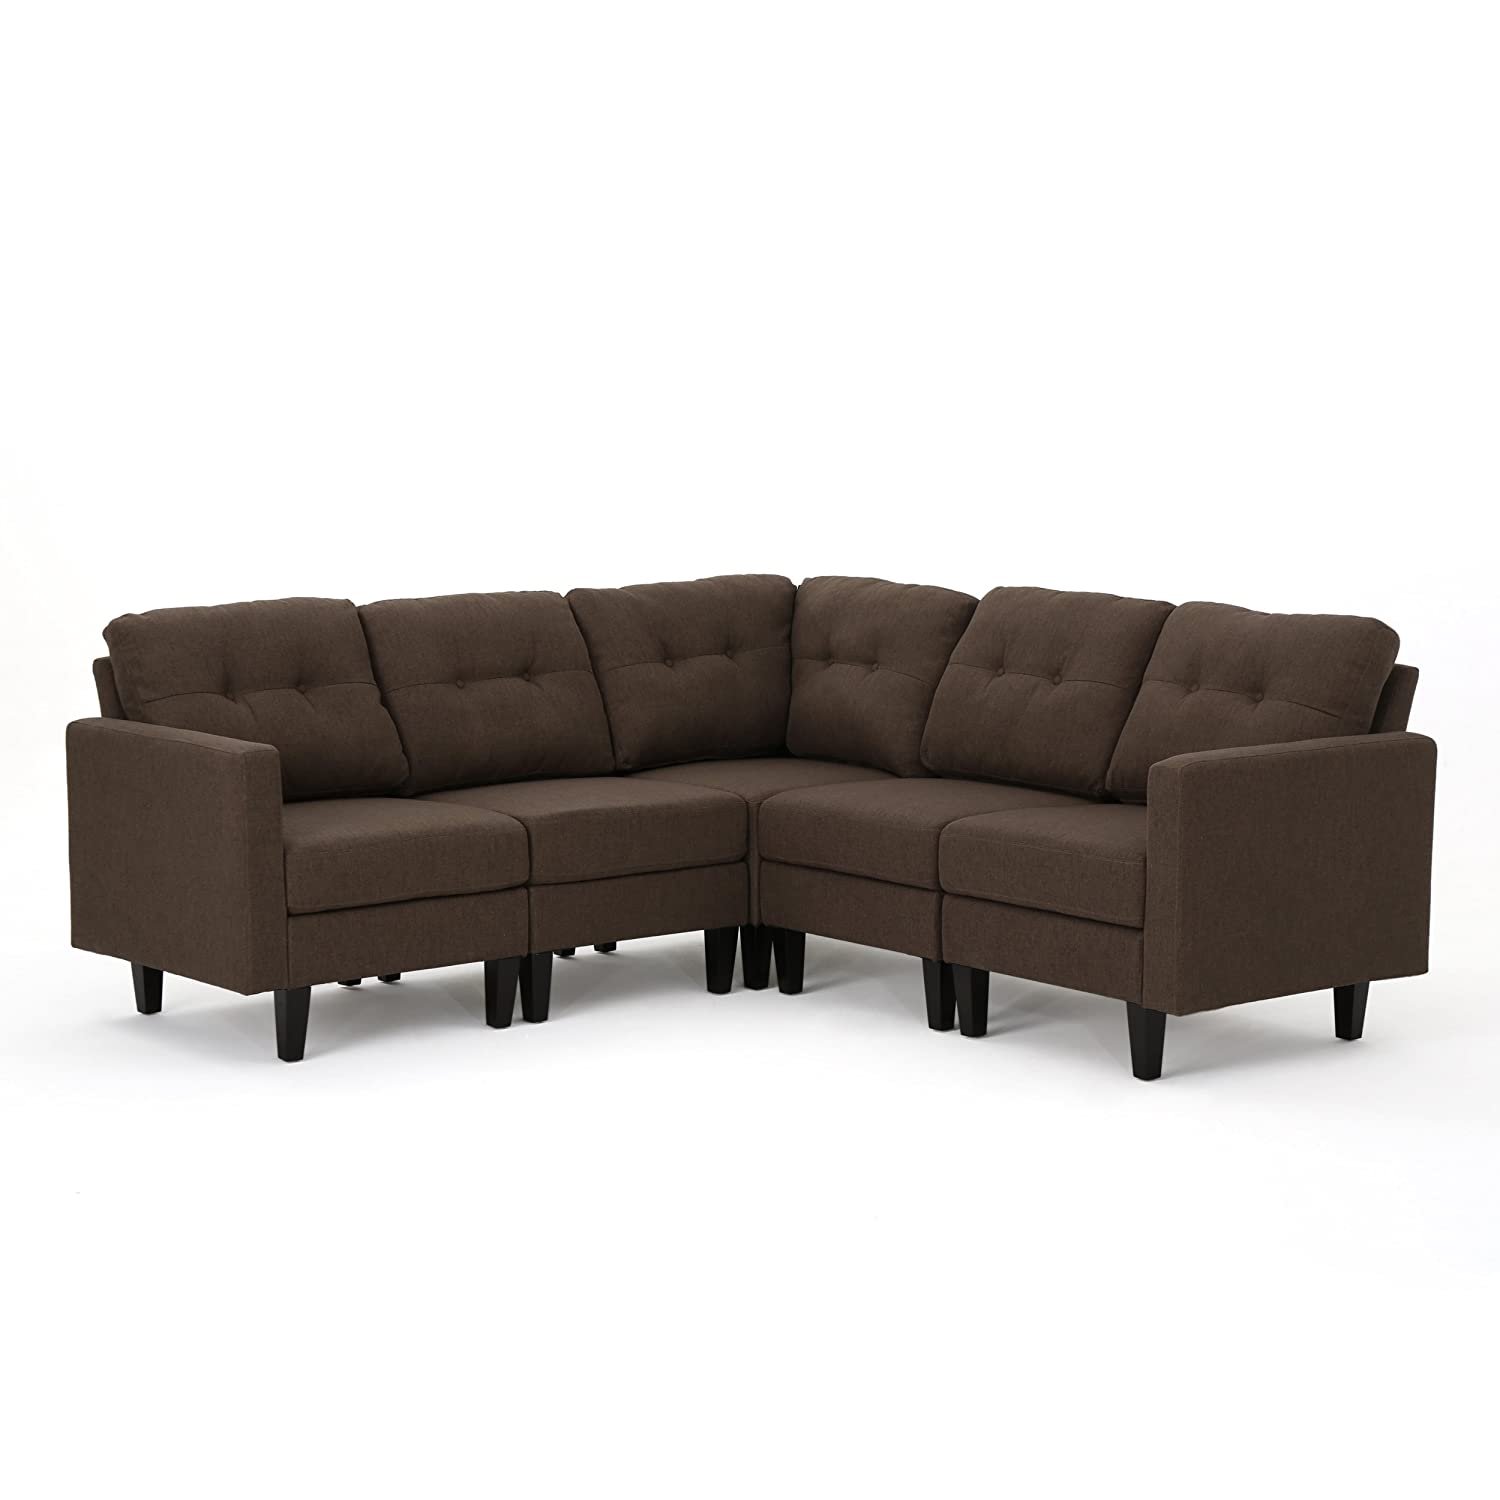 Christopher Knight Home 303602 Emmie Mid Century Modern 5 Piece Dark Brown  Fabric Sectional Sofa,